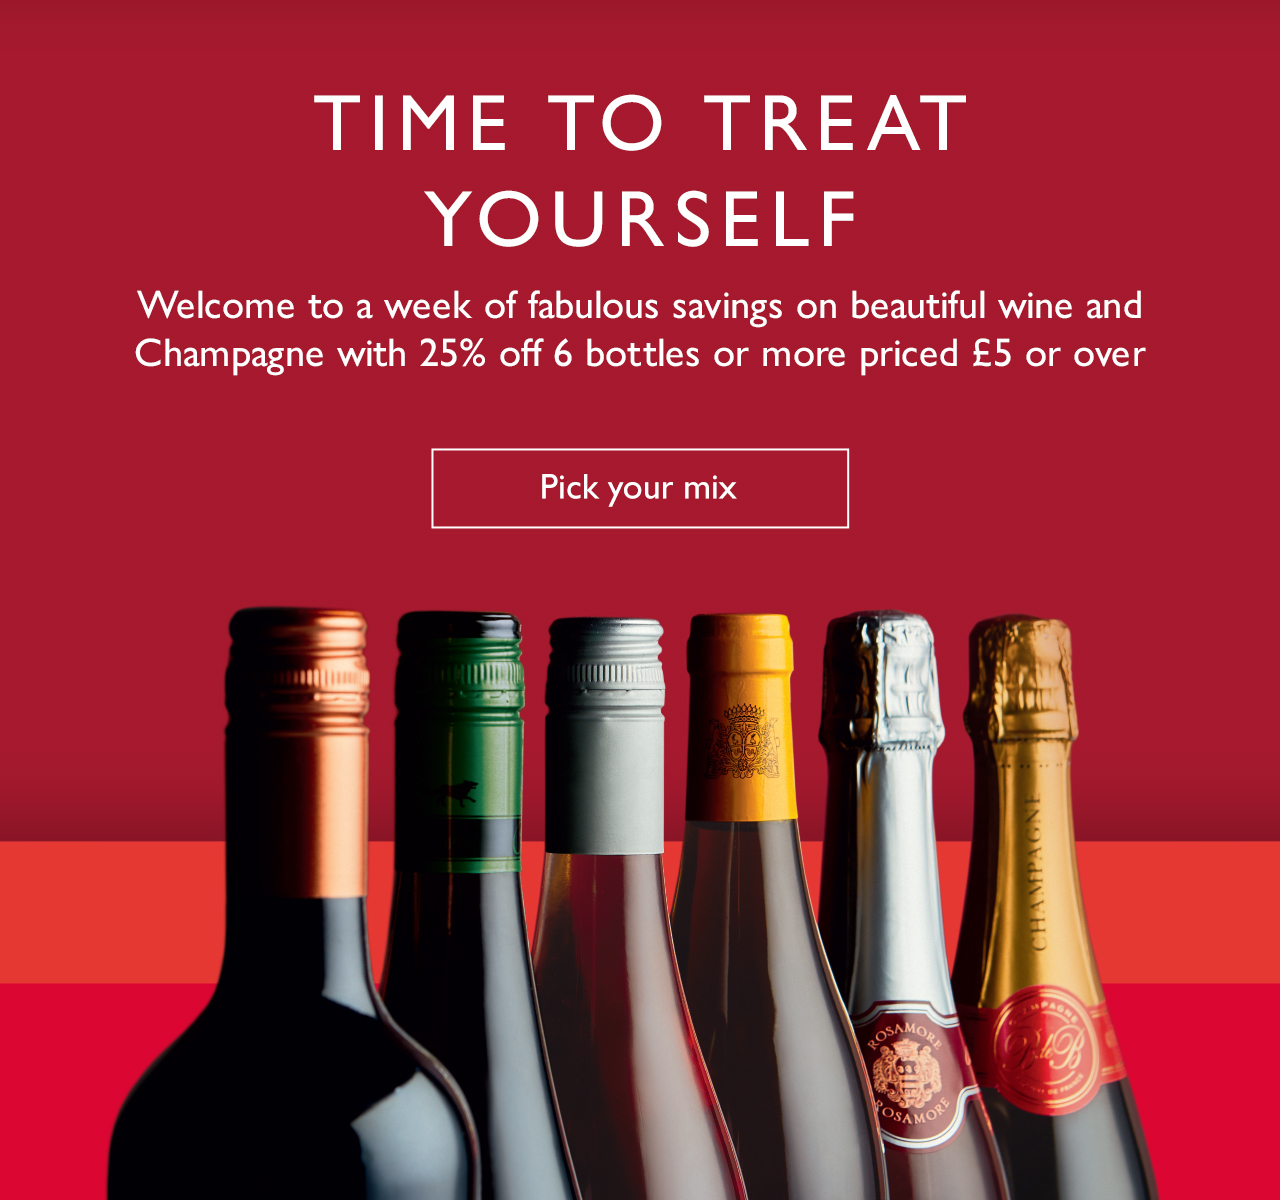 25% OFF 6 Bottles or more of wine and champagne | priced £5 or over